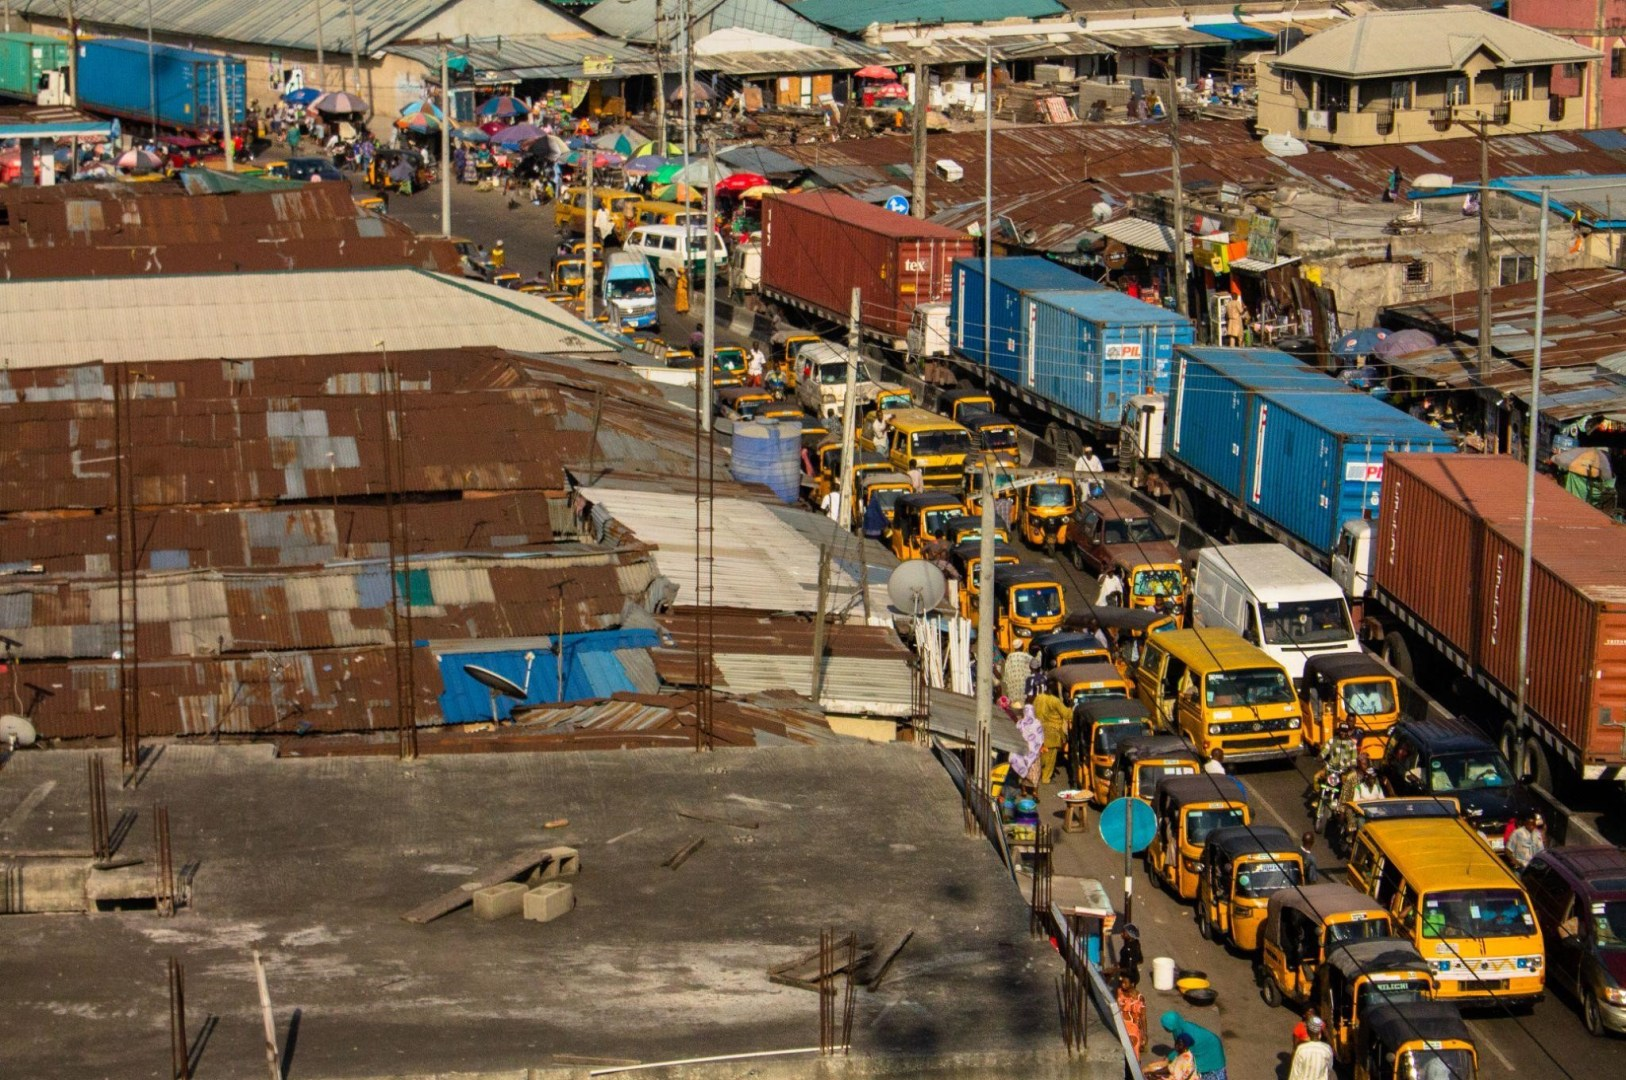 (Inside the 'go slow' portraying the busy traffic in Lagos where Covid-19 index case was discovered. Photo by Dami Akinbode on Unsplash)